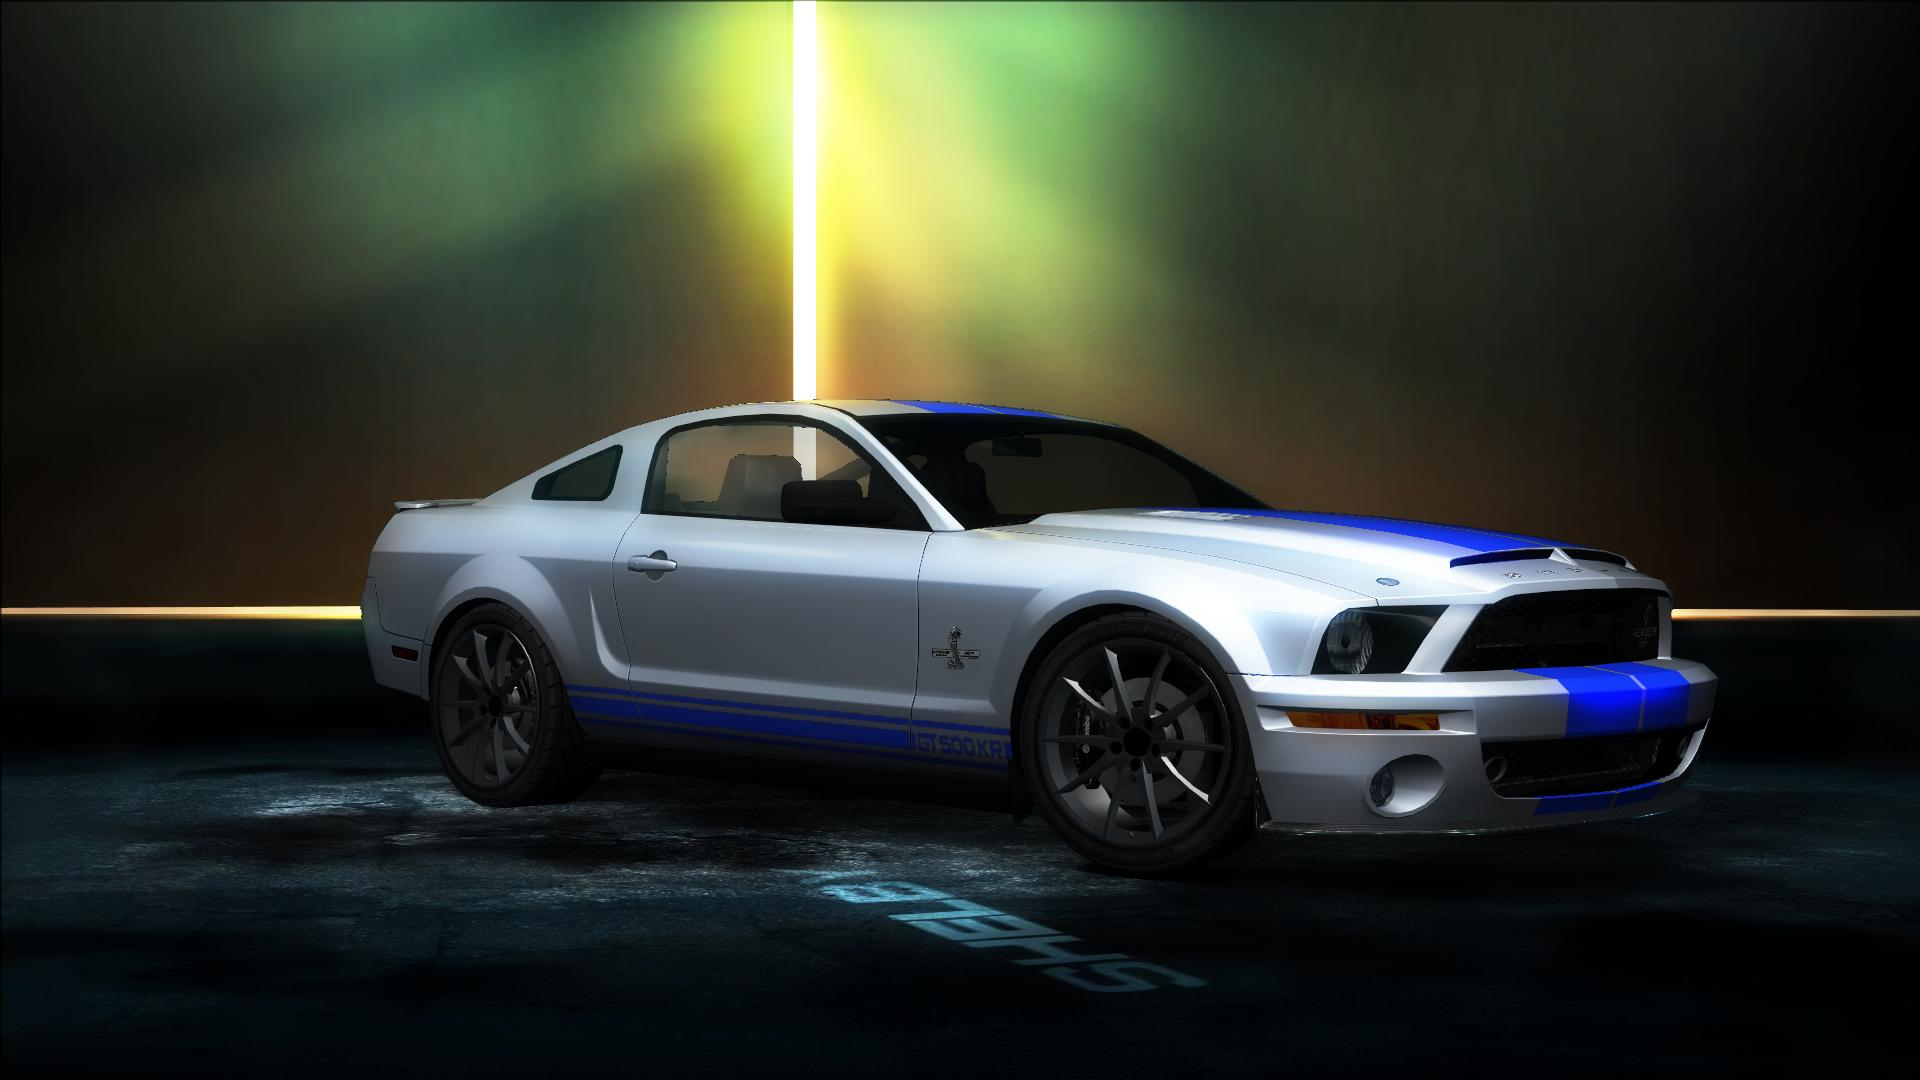 Ford Shelby Gt500kr S 197 I Need For Speed Wiki Fandom